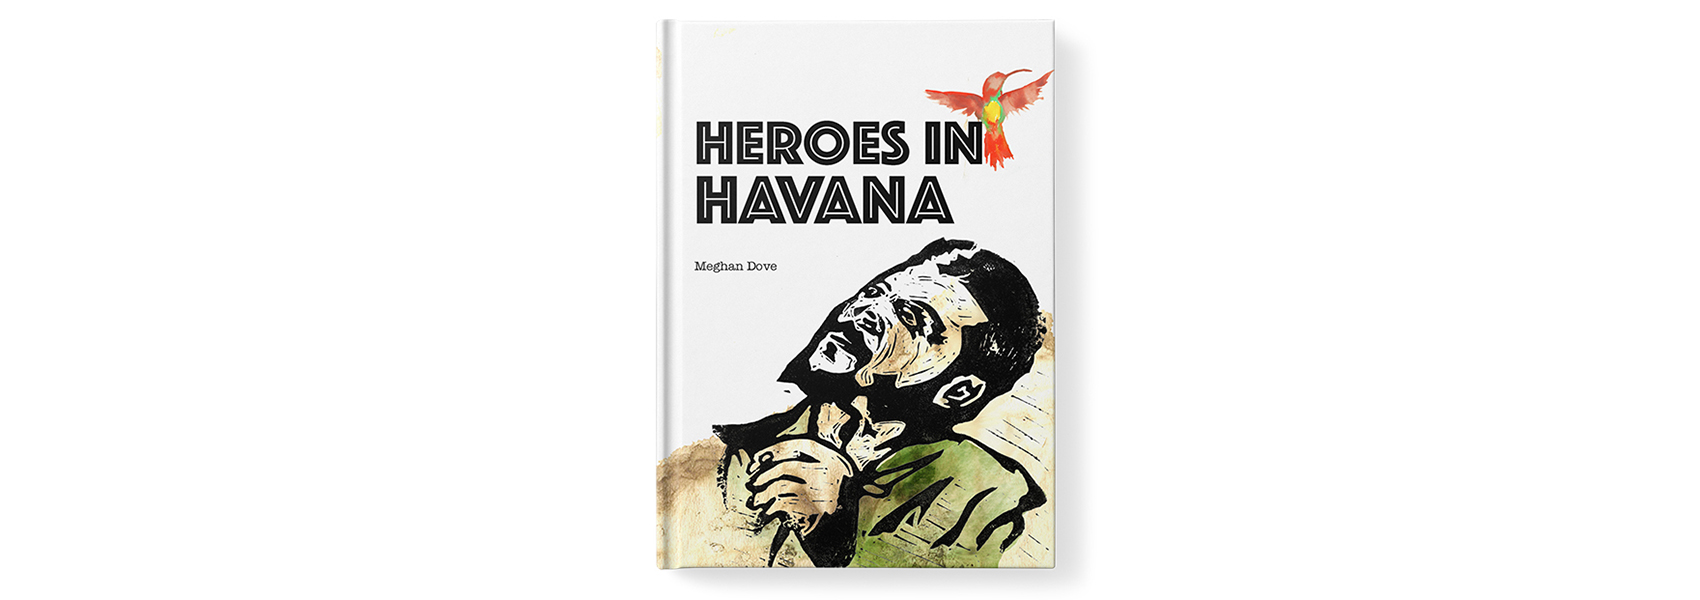 Heroes in Havana book cover design by Meghan Dove